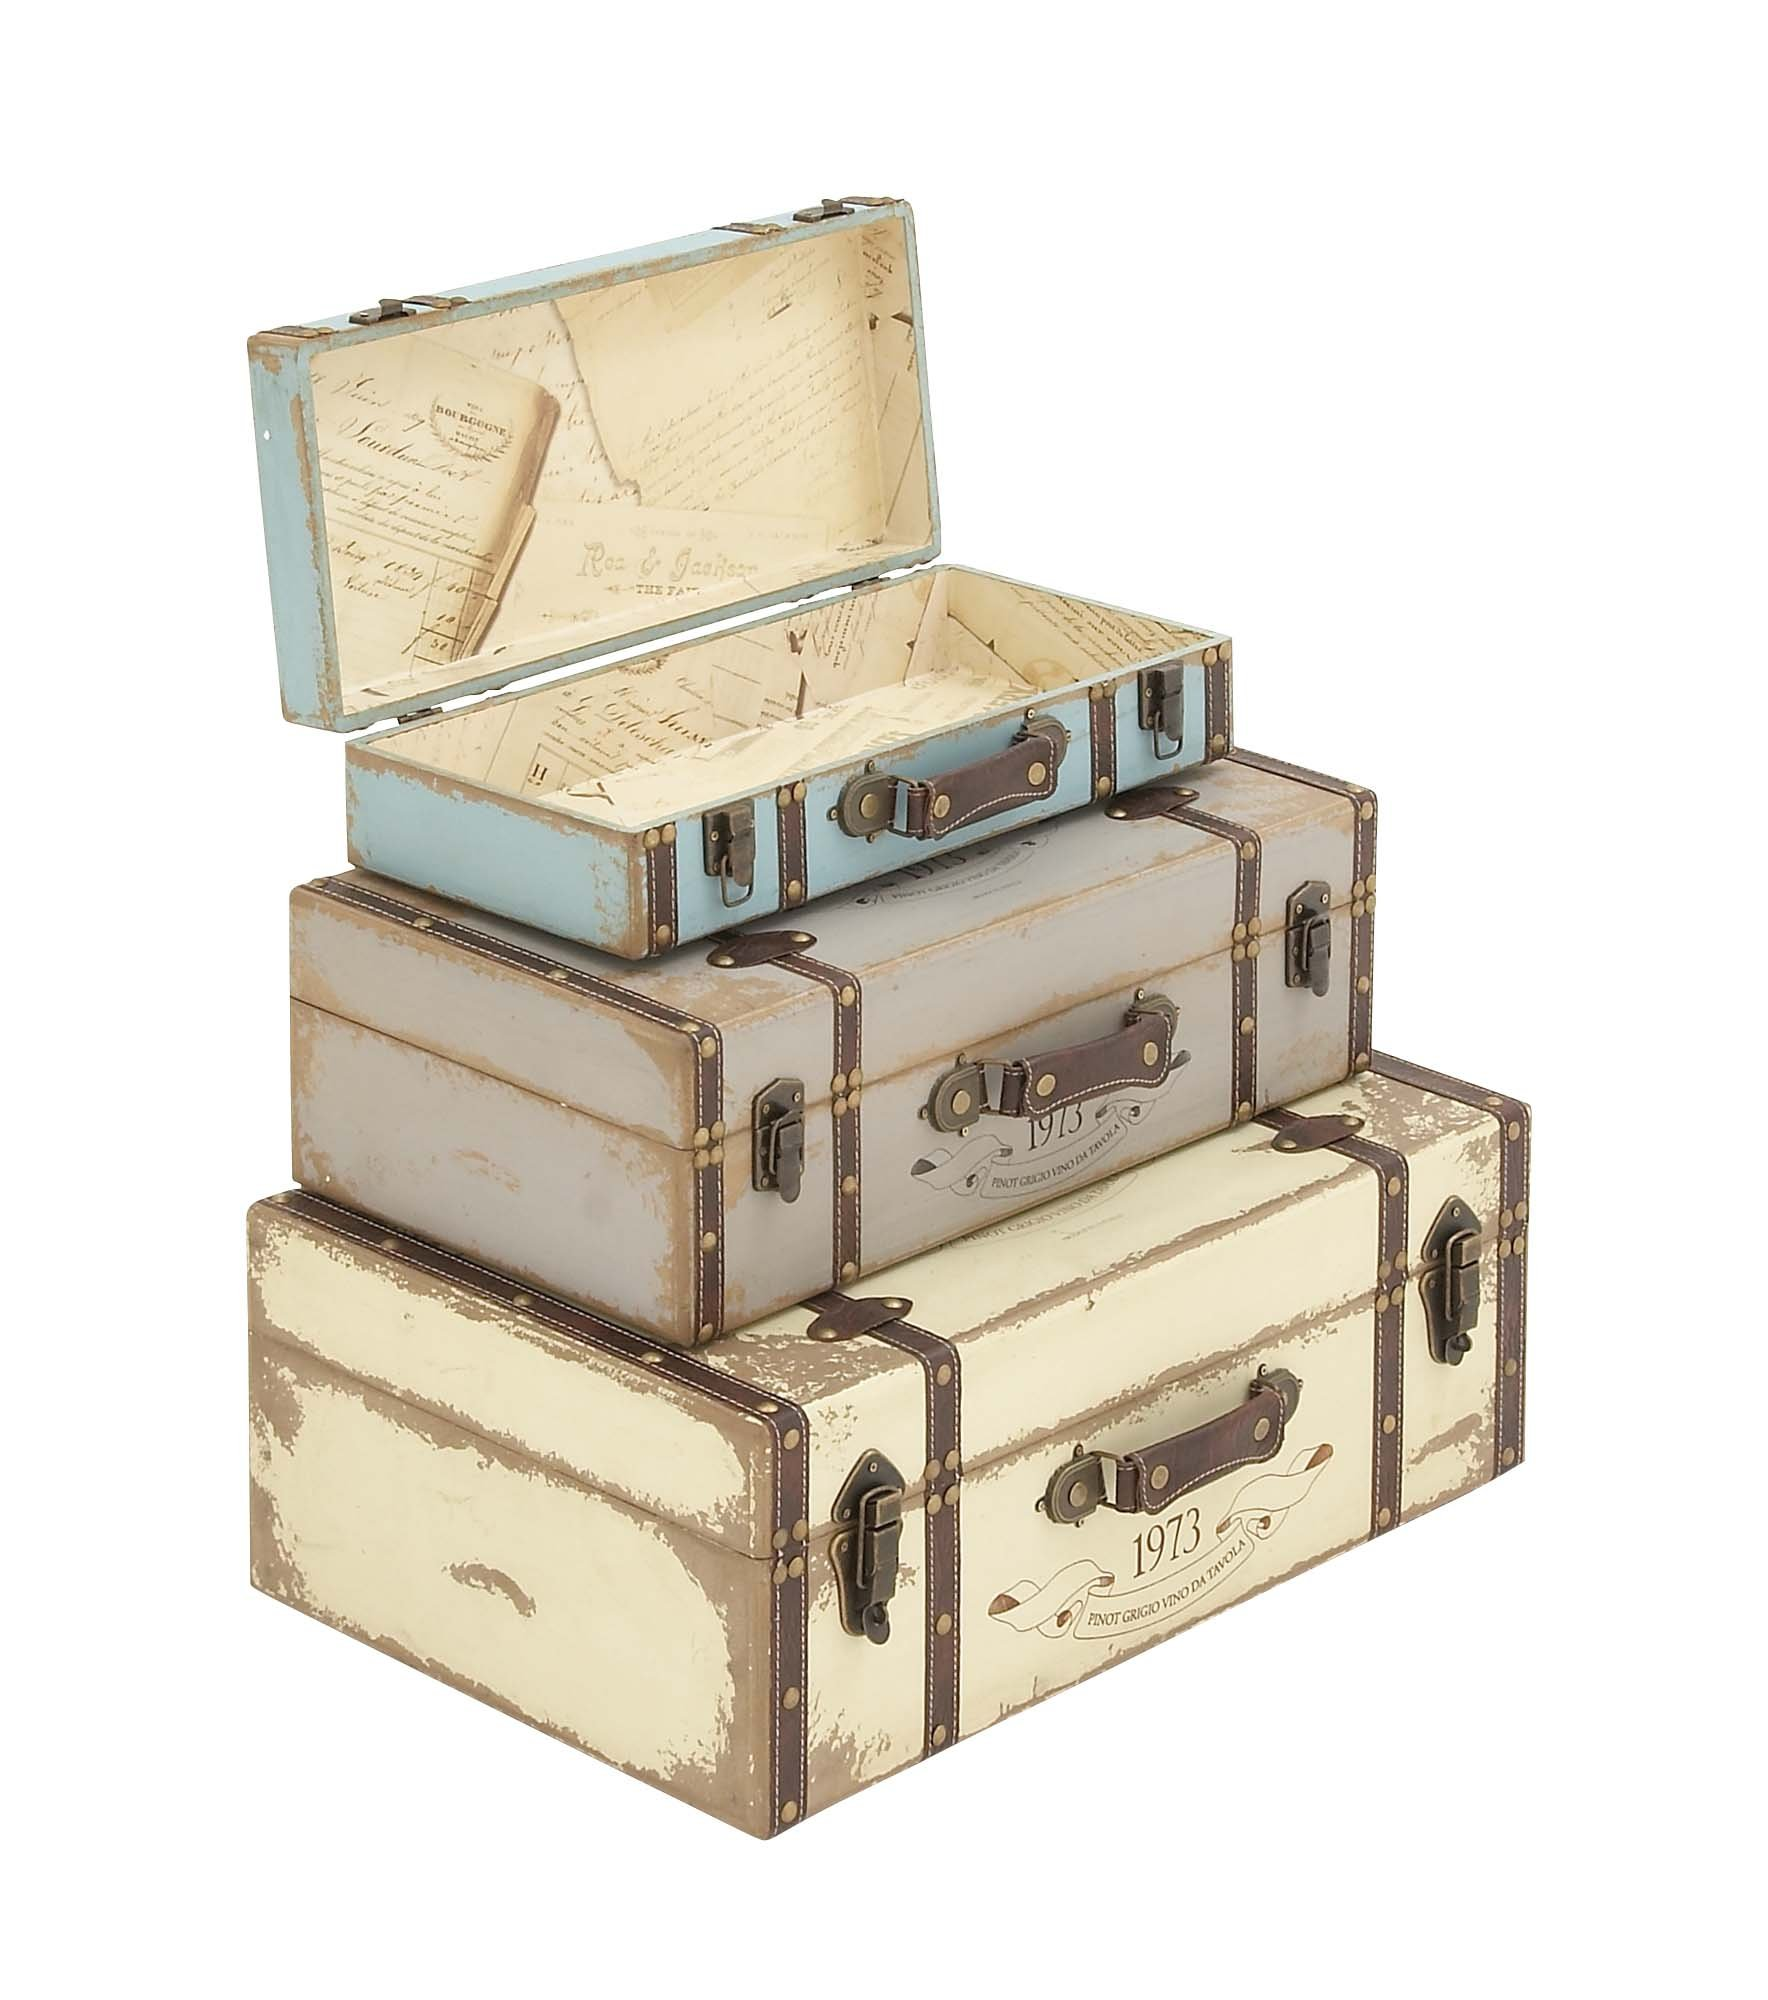 Deco 79 Wood Trunk, 23 by 21 by 18-Inch, Set of 3 by Deco 79 (Image #2)